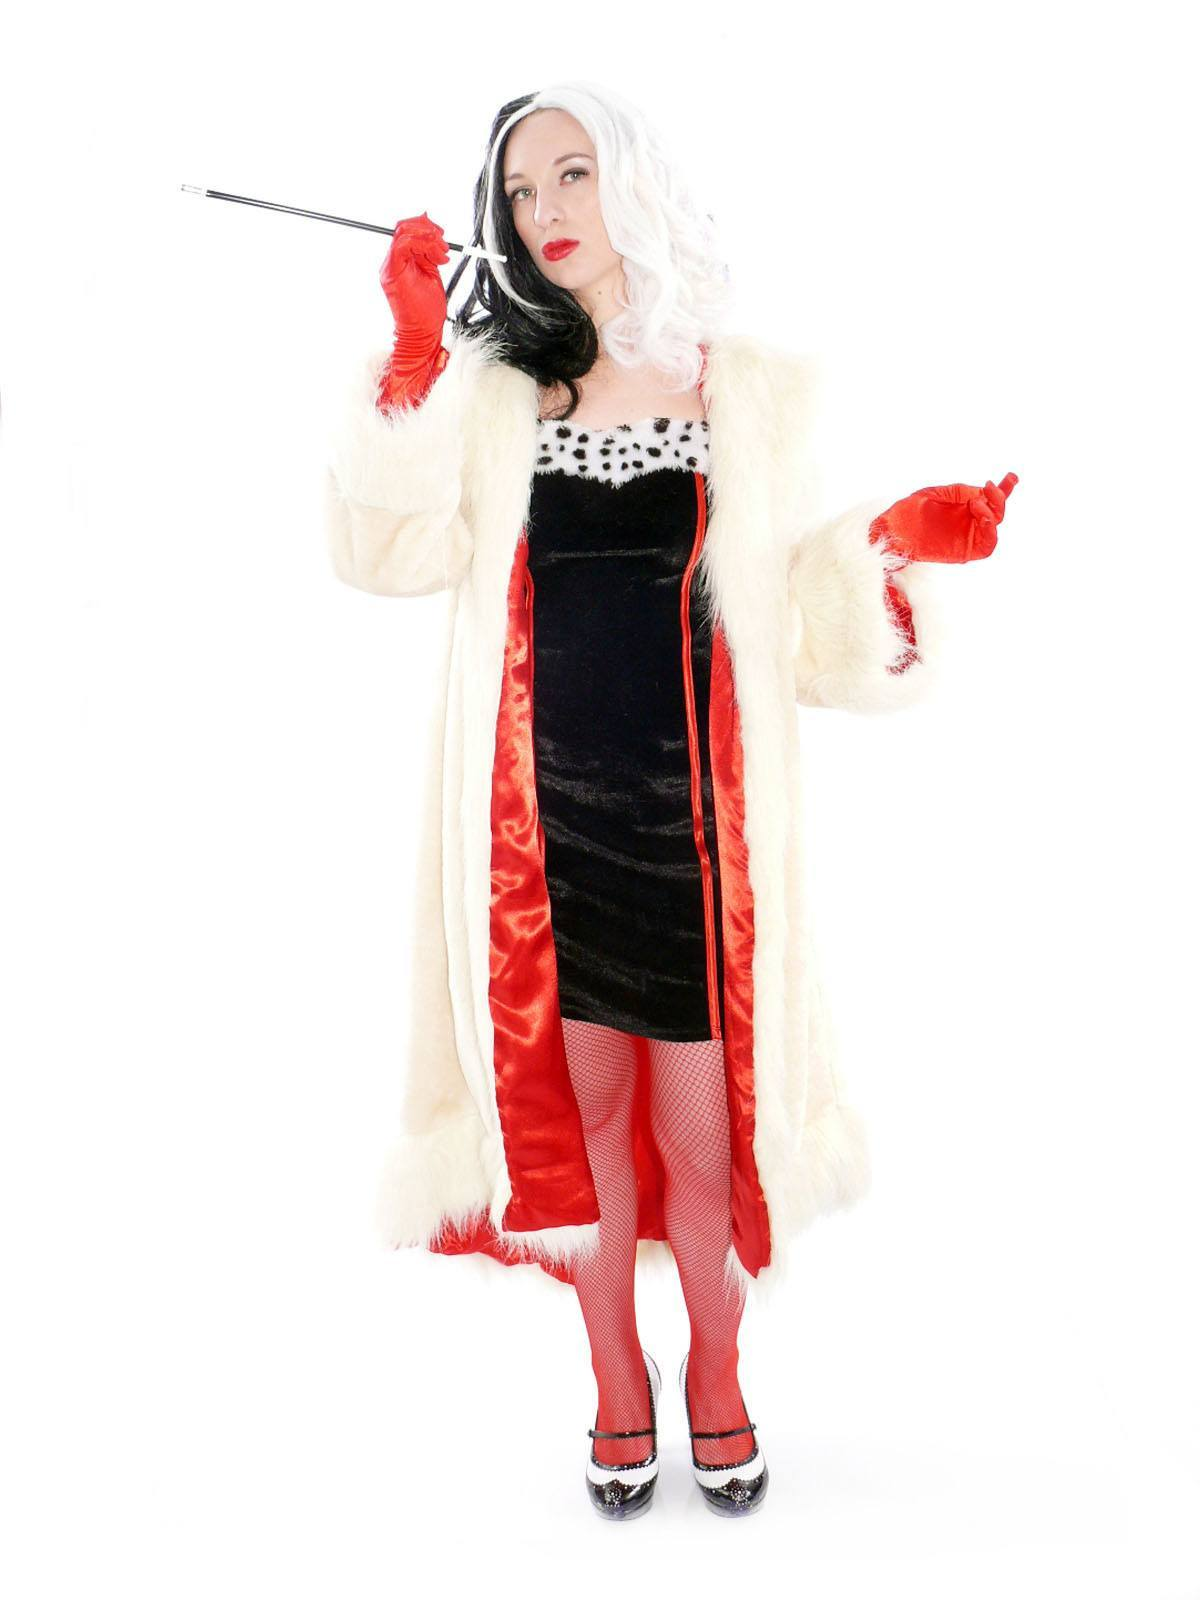 cruella de vil coat costume hire brisbane disguises. Black Bedroom Furniture Sets. Home Design Ideas